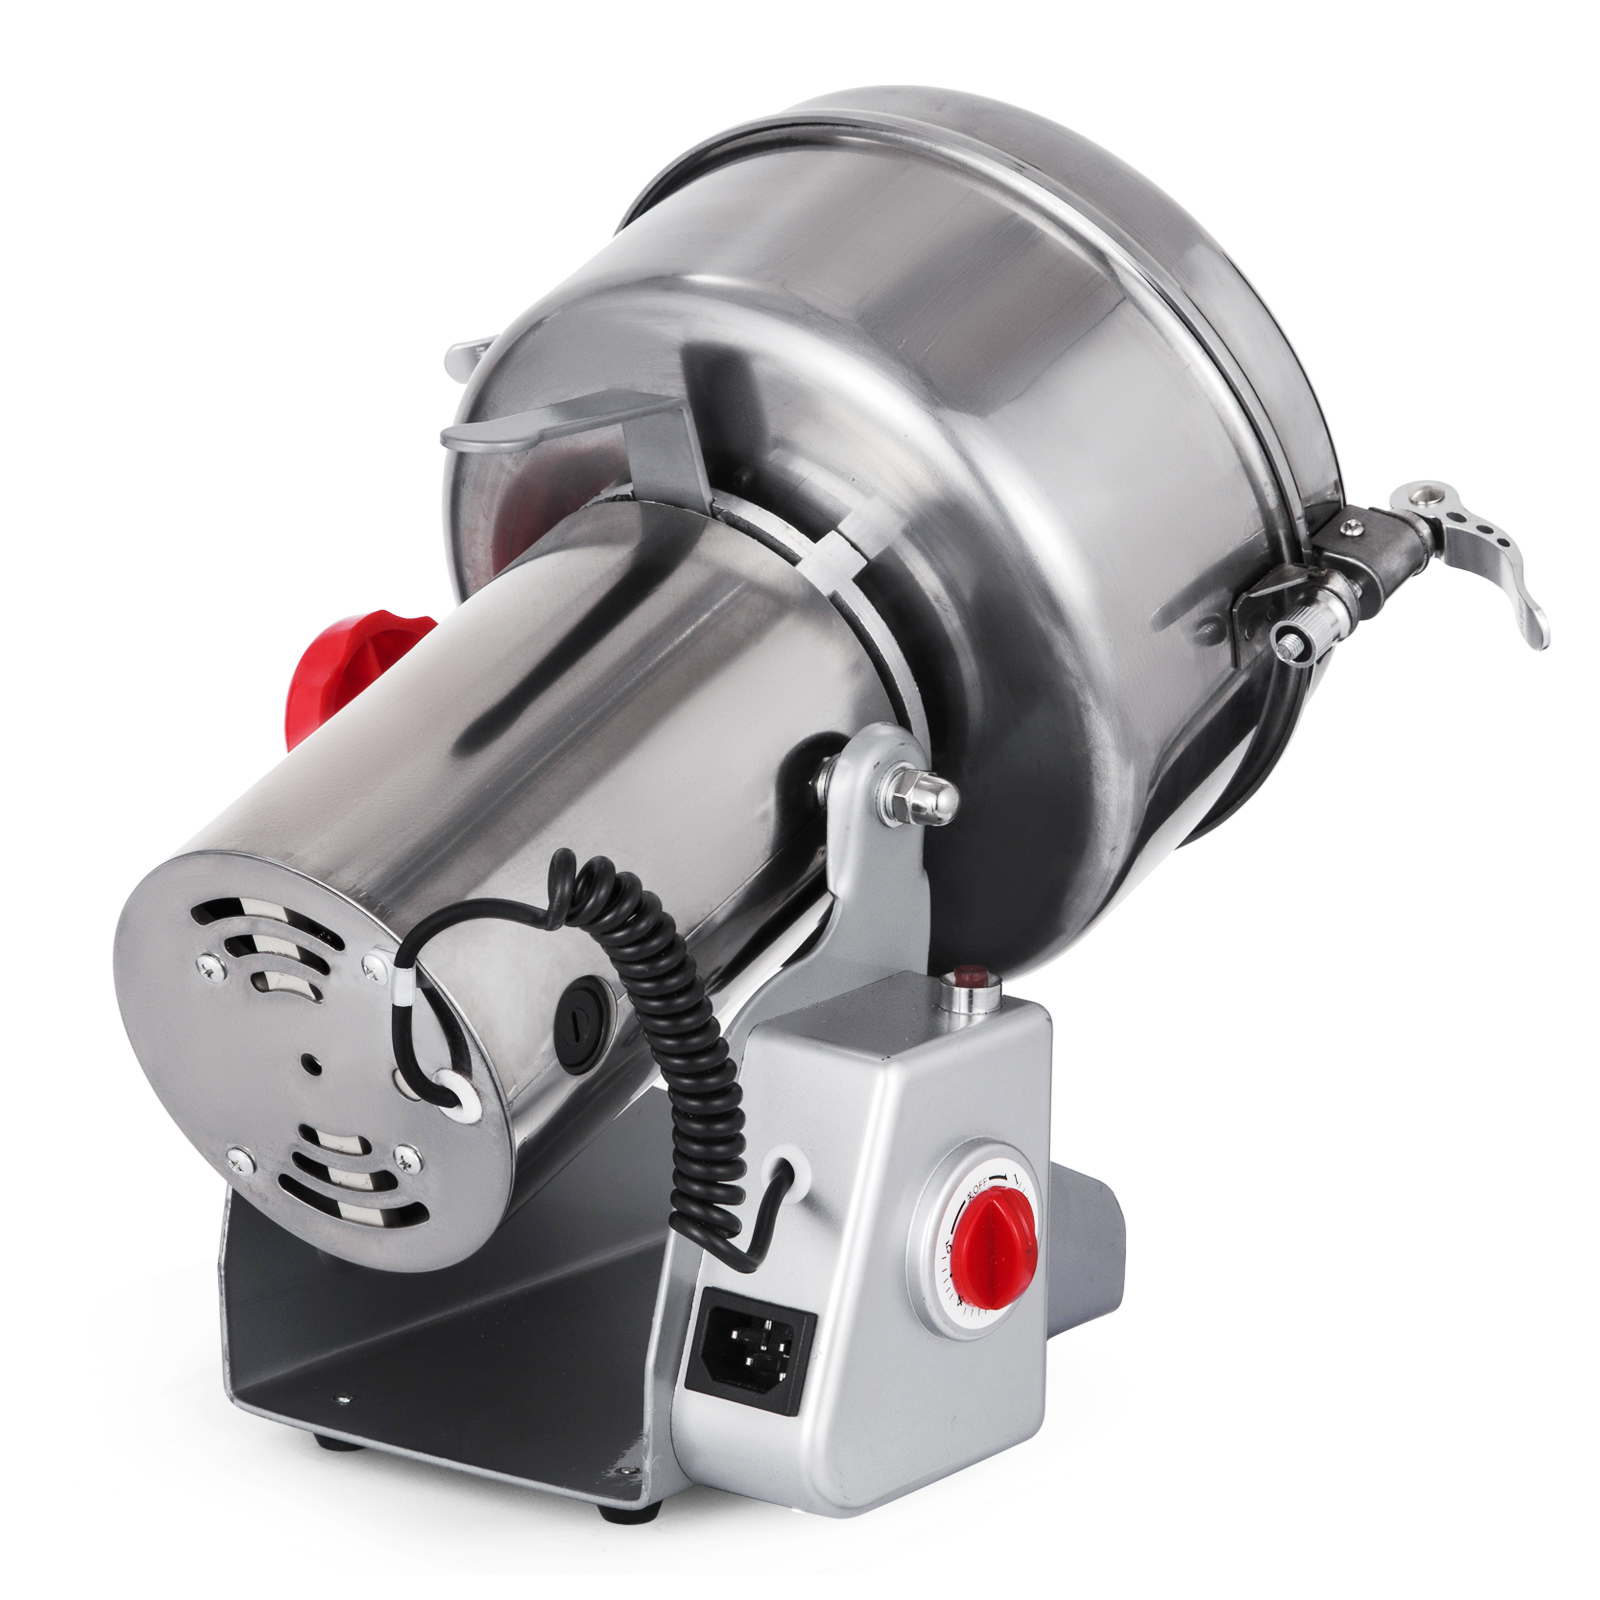 2000g Electric Herb Grain Mill Grinder 70~300Mesh 110V 28000R//M Stainless Steel